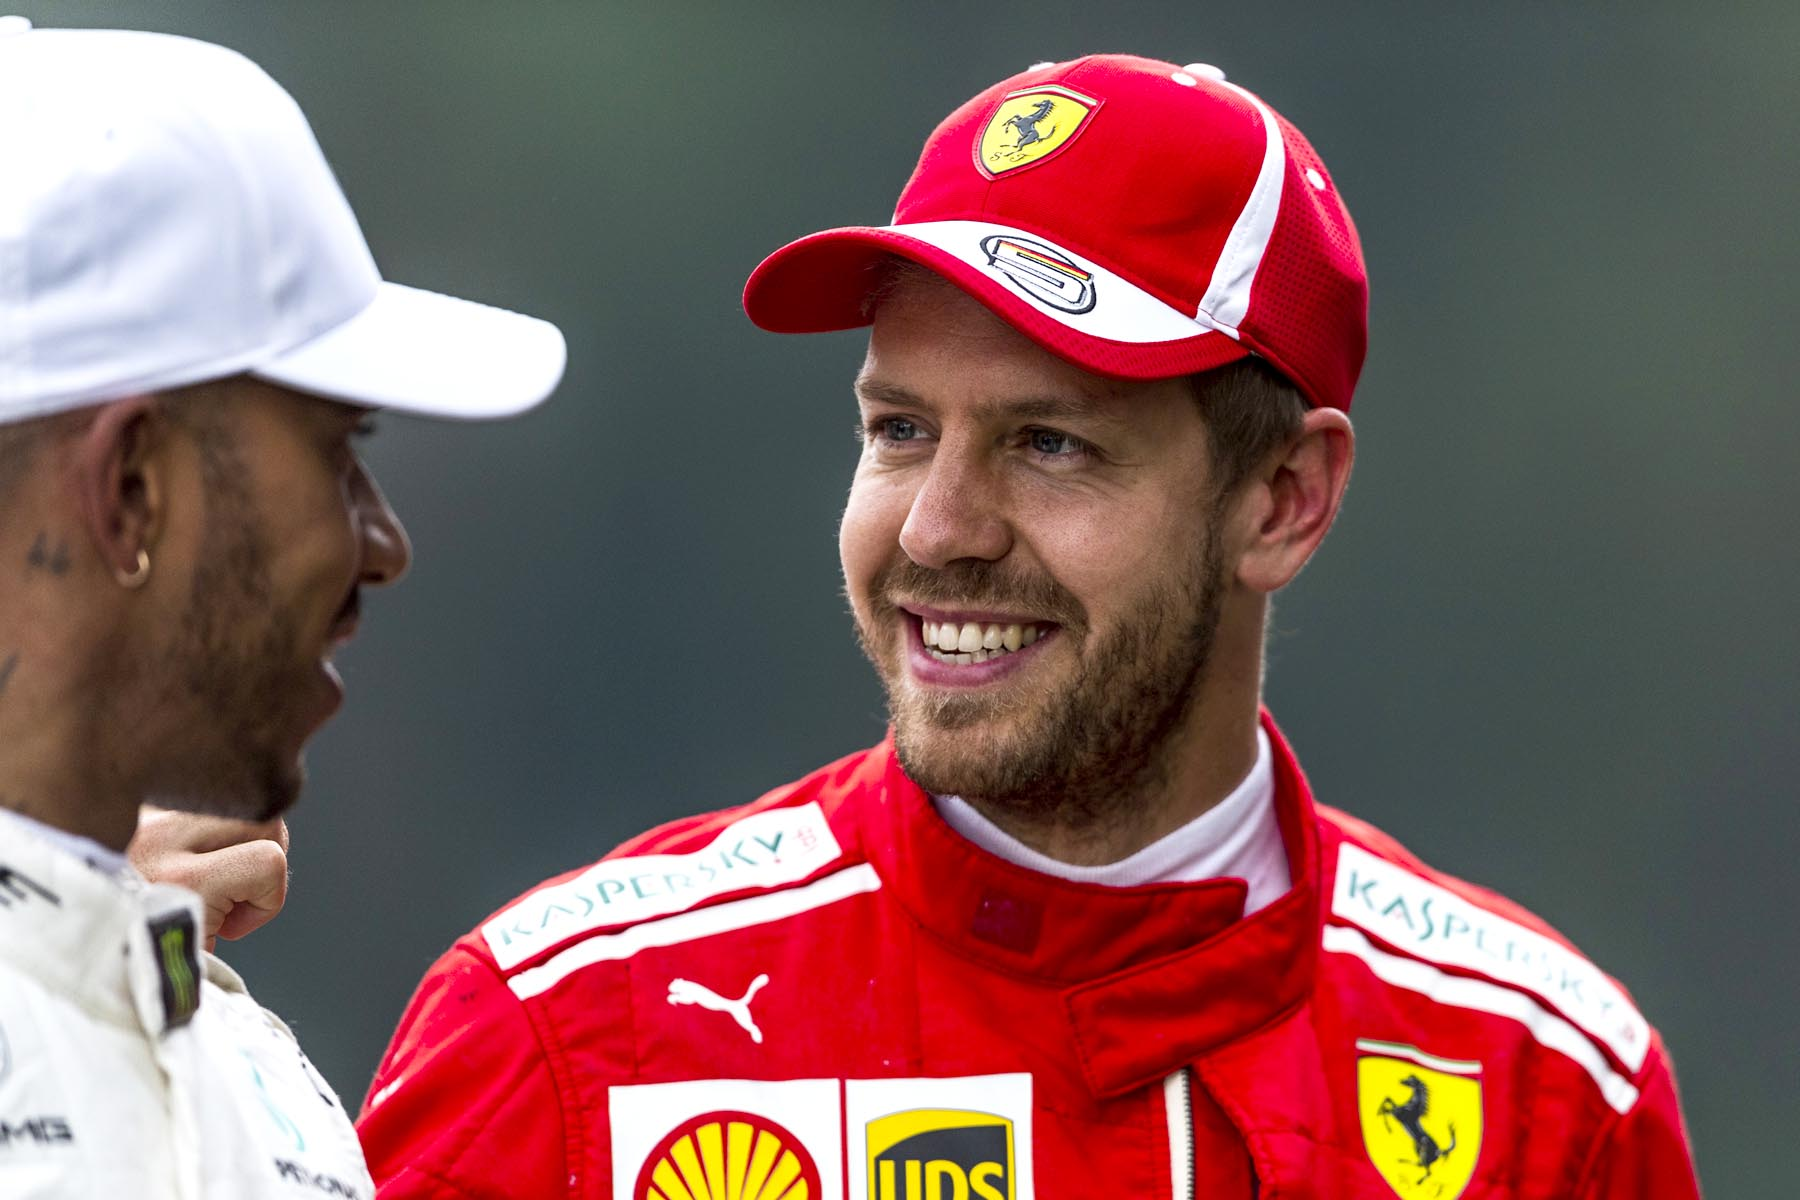 Lewis Hamilton and Sebastian Vettel at the 2018 Austrian Grand Prix.